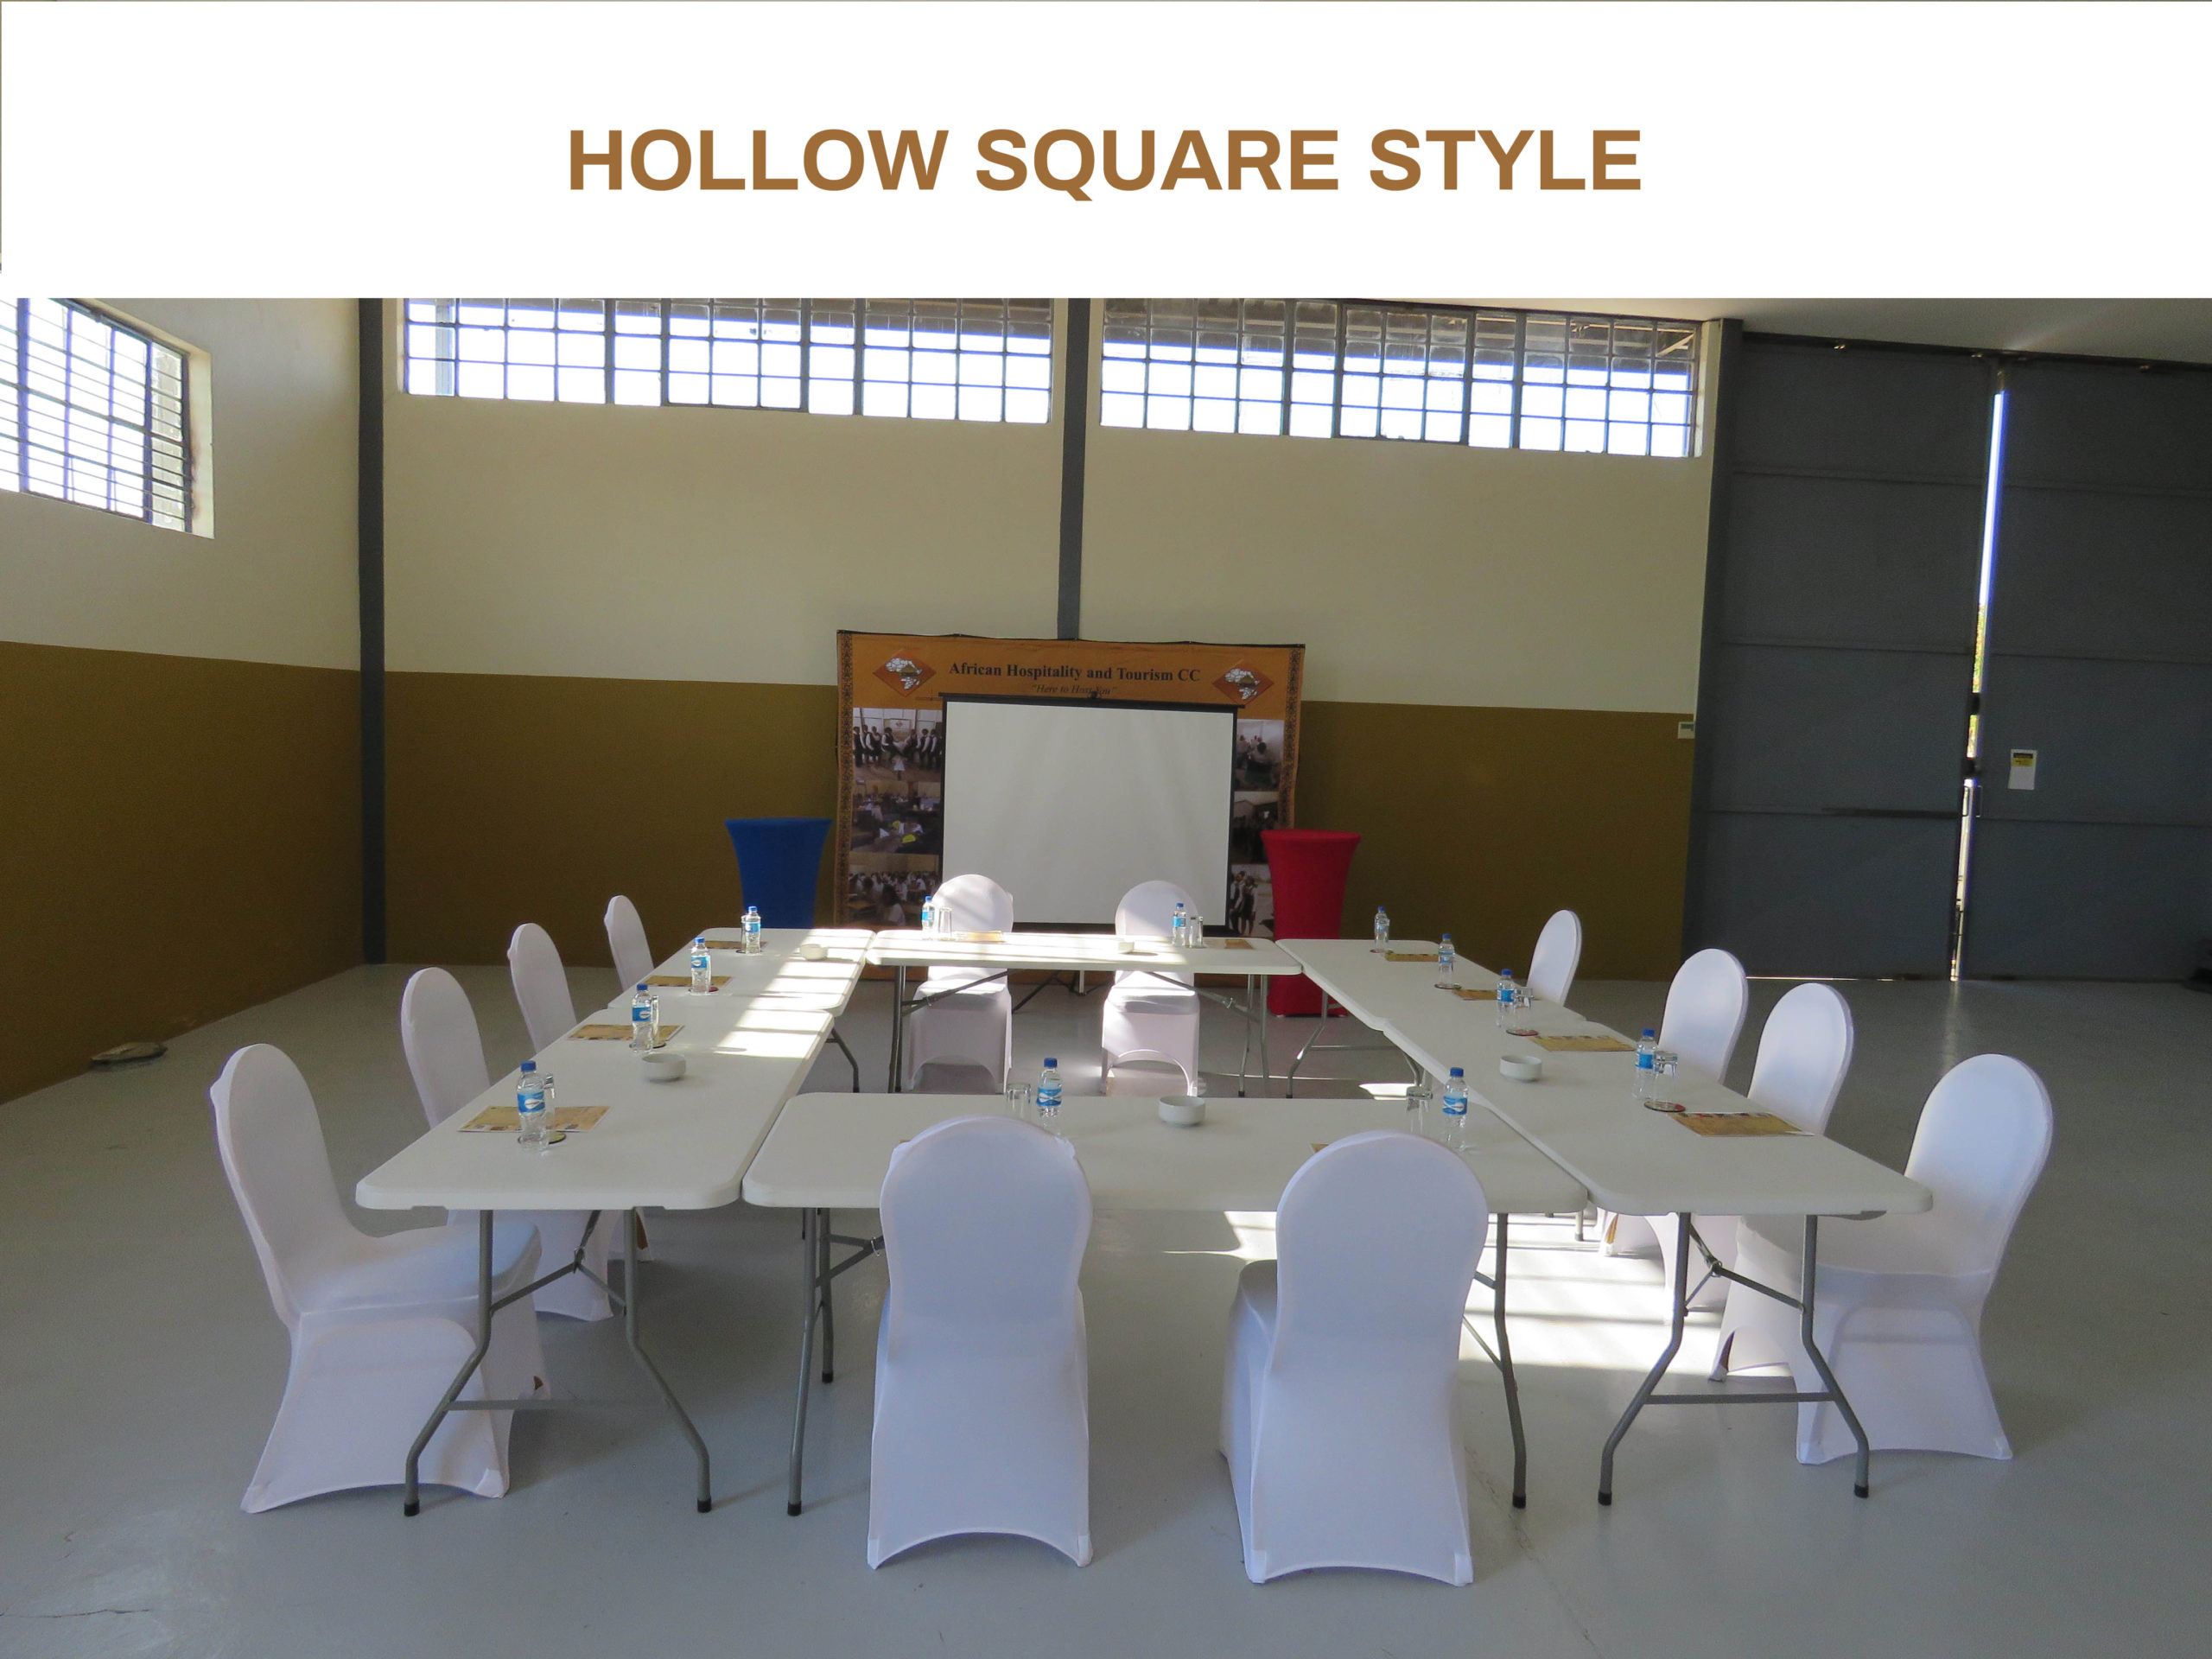 HOLLOW SQUARE STYLE